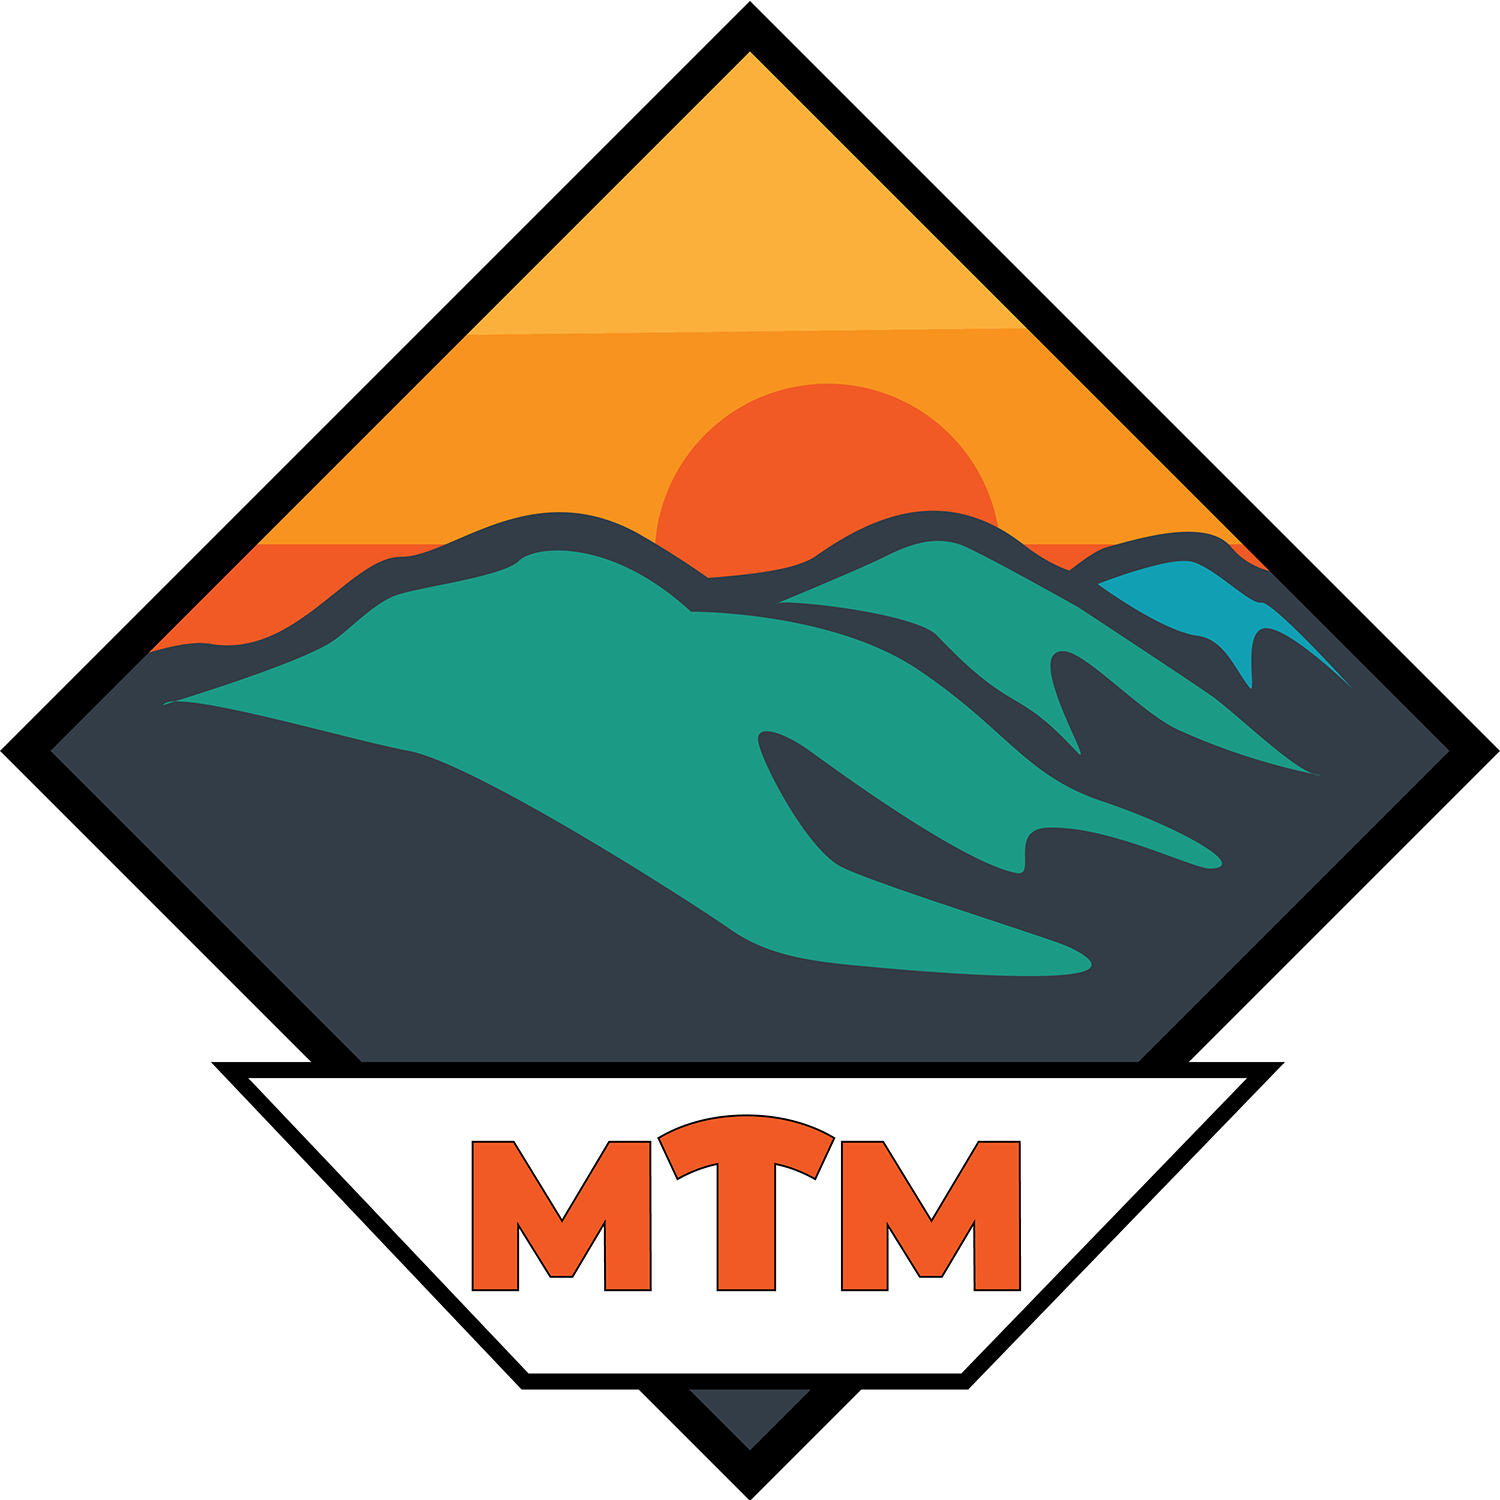 Mountain Tech Media: Advancing Appalachia's economy through Pioneering Design, Visuals, & Branding since 2015.